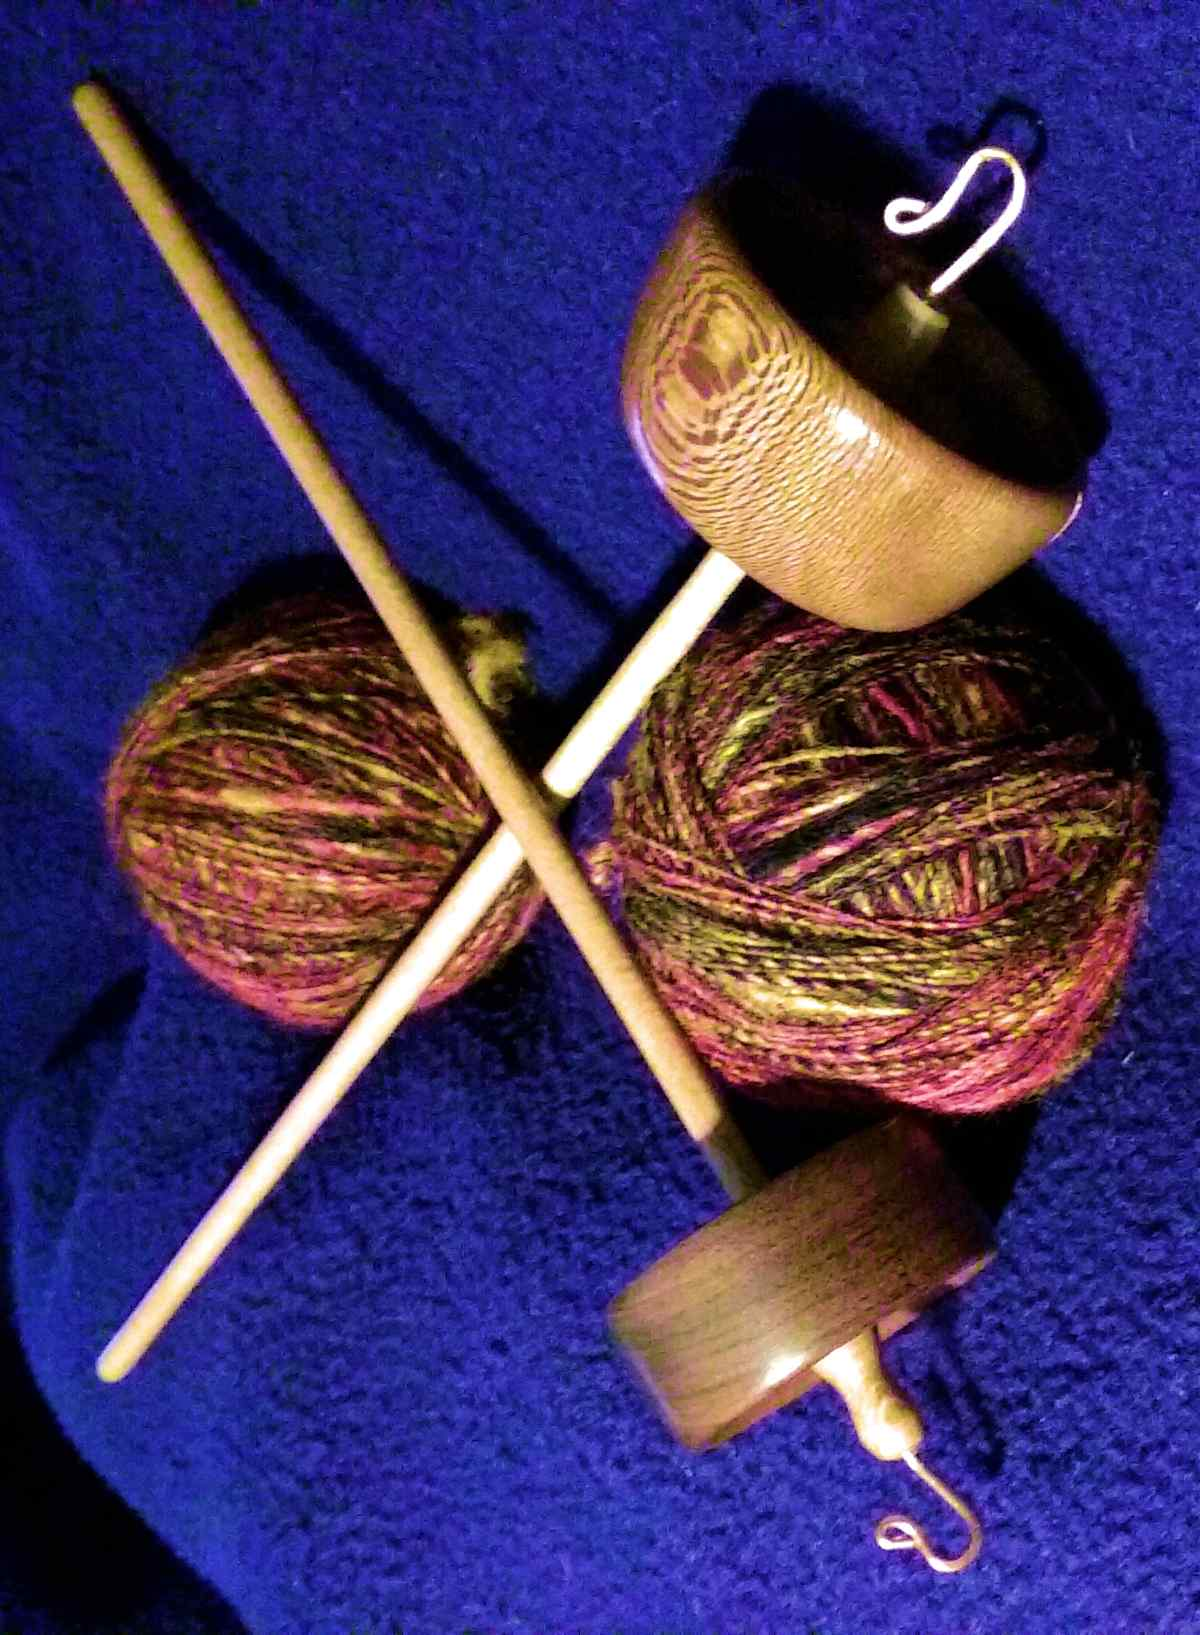 Success both spindles empty of their yarn which is wound into the two plying balls .  Spindles and spinning by Cynthia D. Haney of Cynthia Wood Spinner.  Branch size top whorl one ounce rim weighted drop spindles.